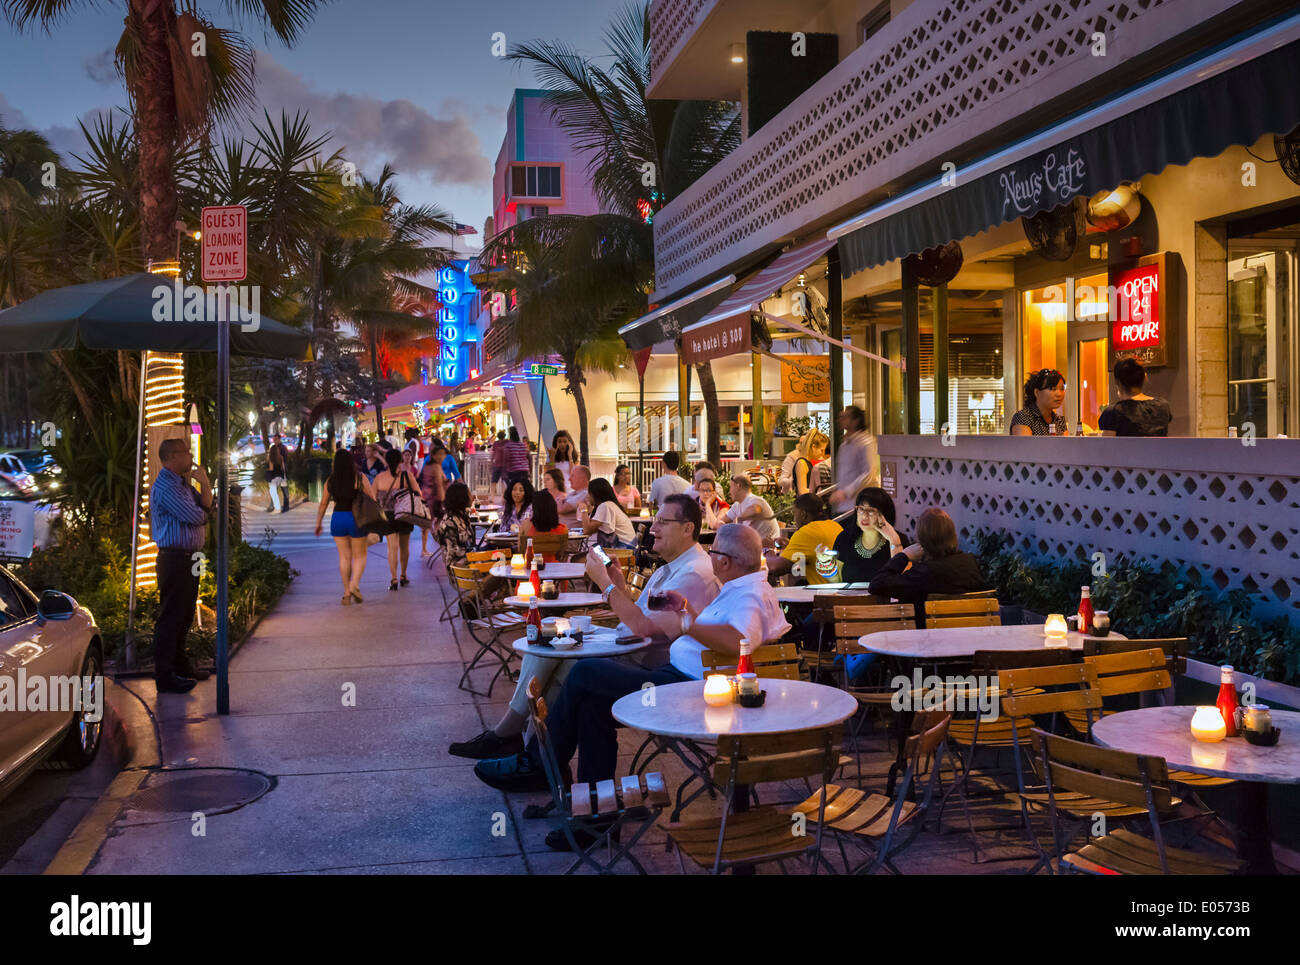 News Cafe On Ocean Drive At Night South Beach Miami Florida USA